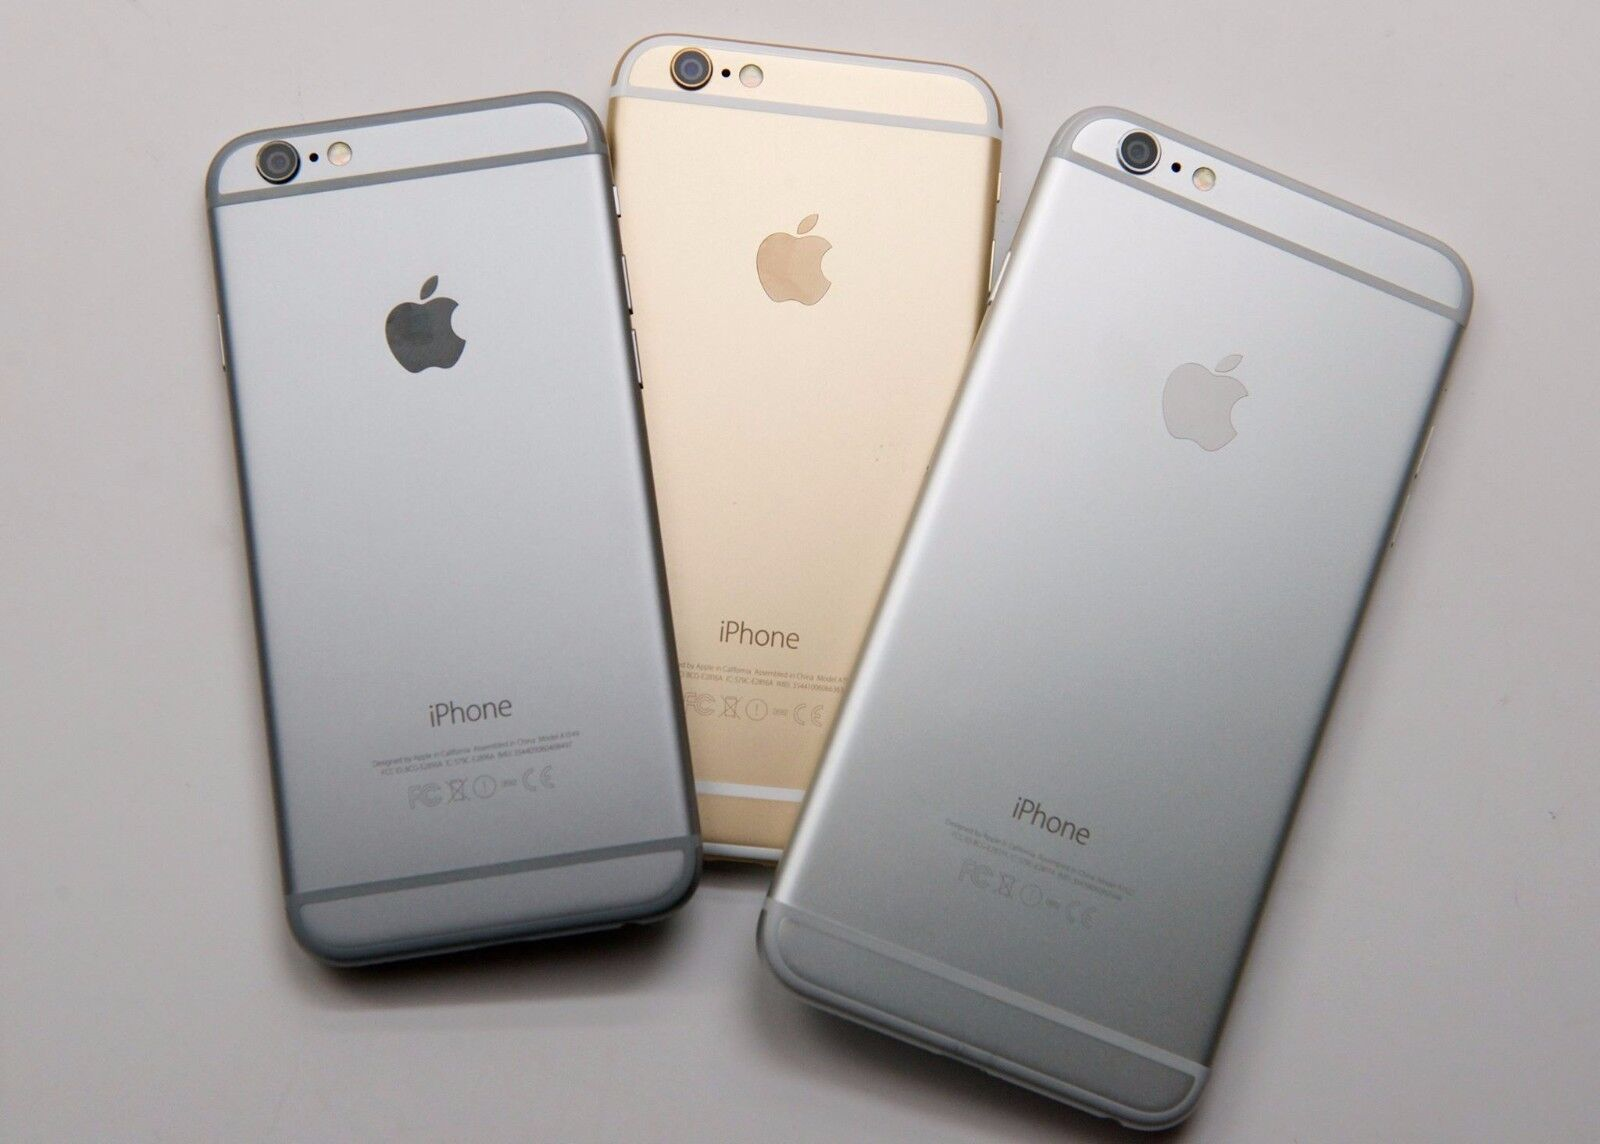 Apple iPhone 6 , SE , 5S - 16GB Factory Unlocked (All colors) Smartphone